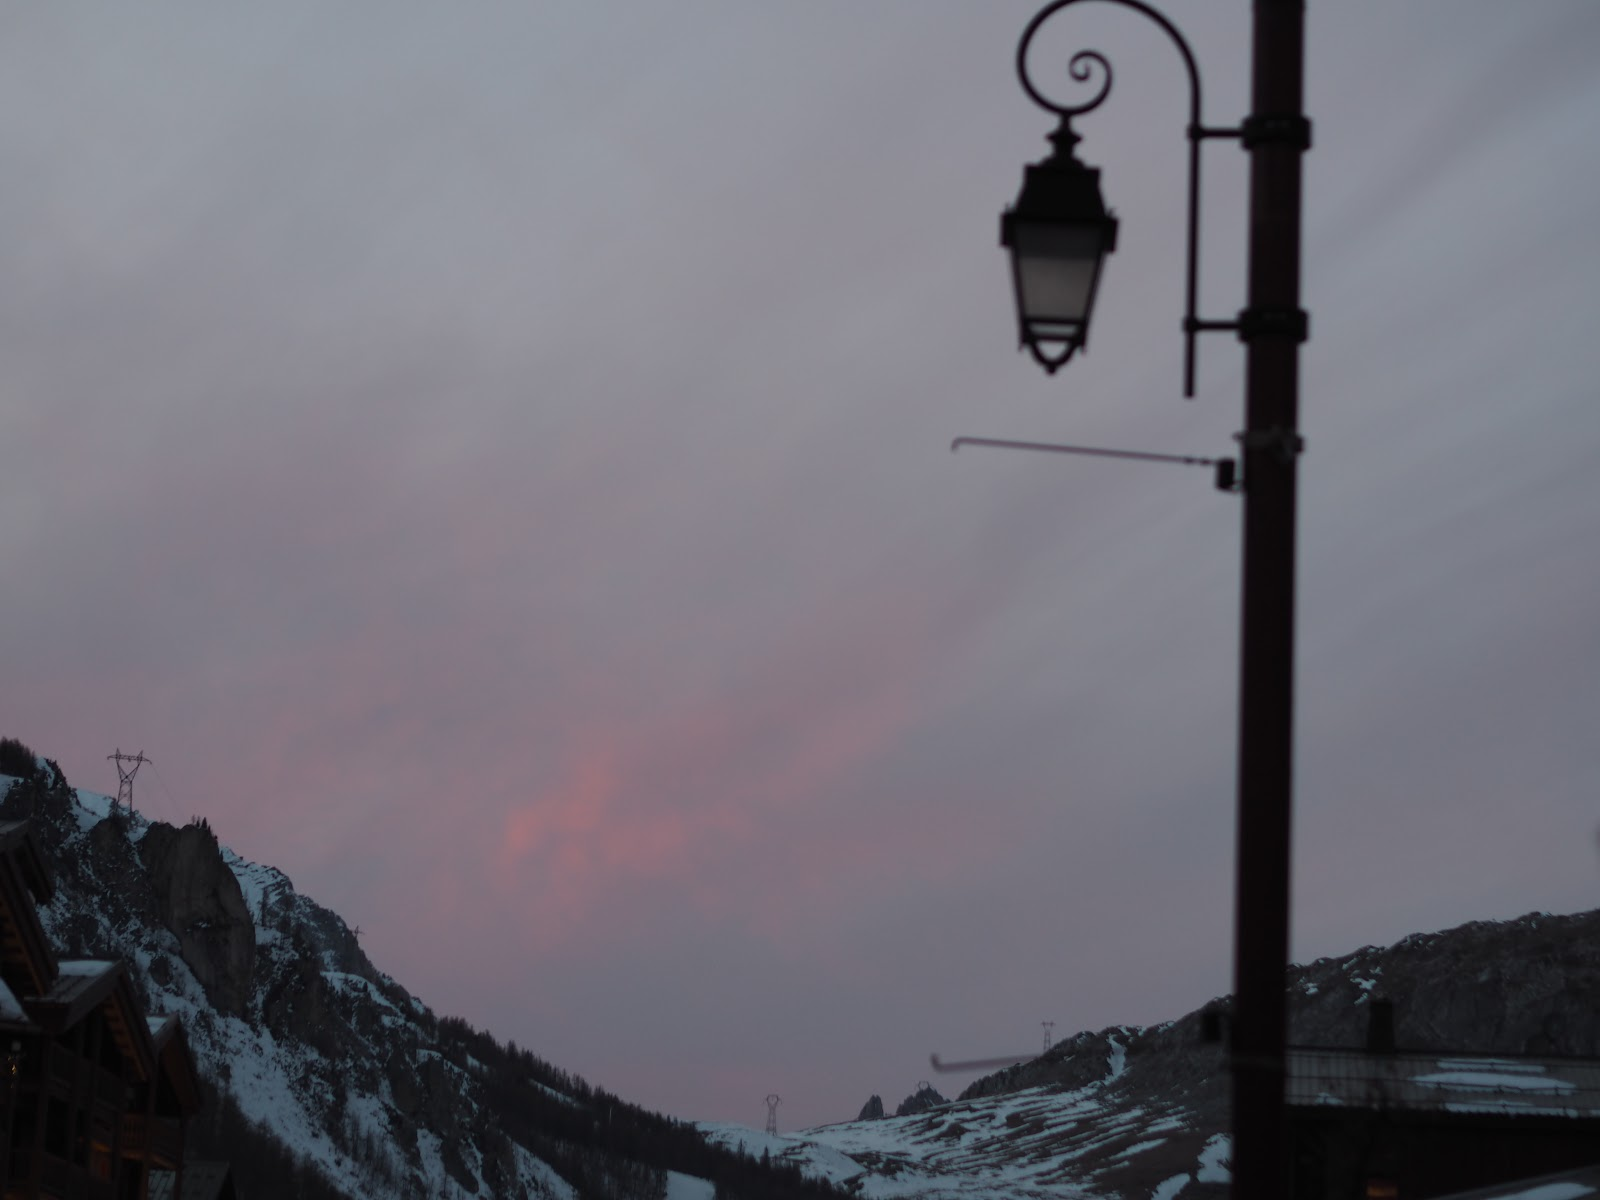 Sunset in the mountains, Val d'isere, France